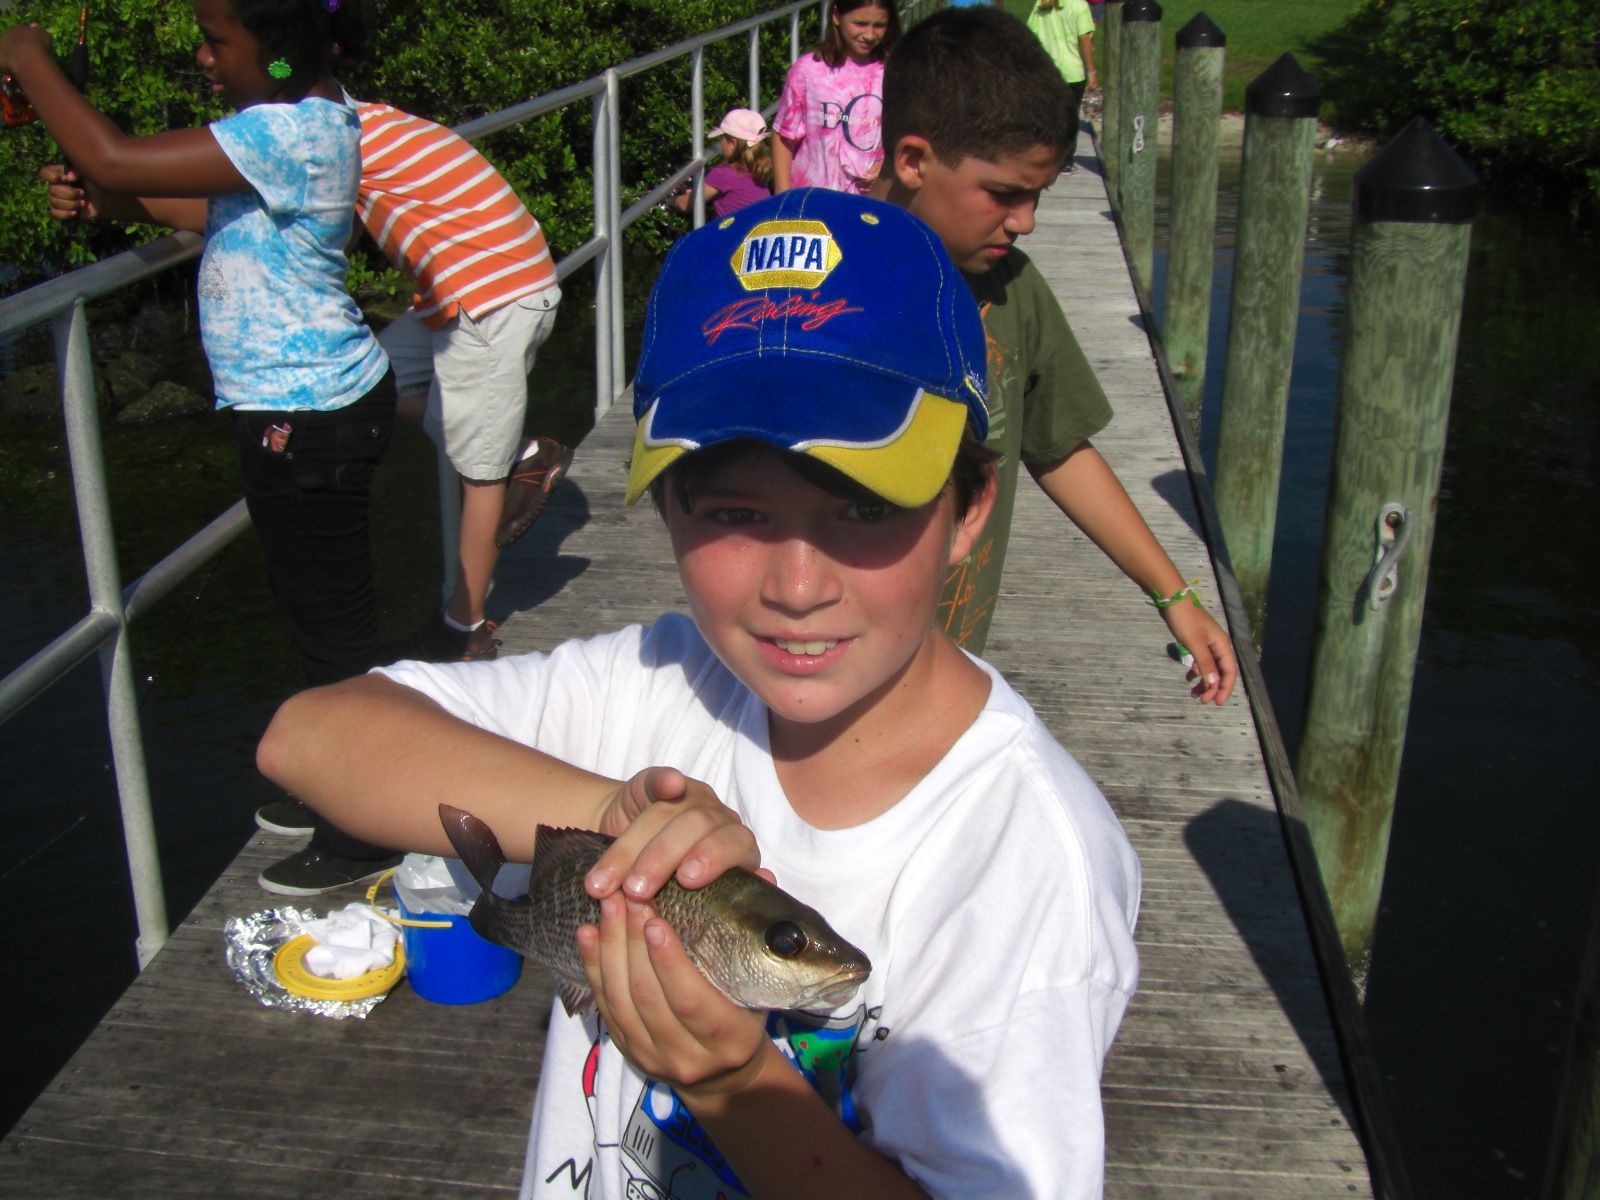 Florida fishing academy boynton beach summer camp fishing for Fishing summer camp